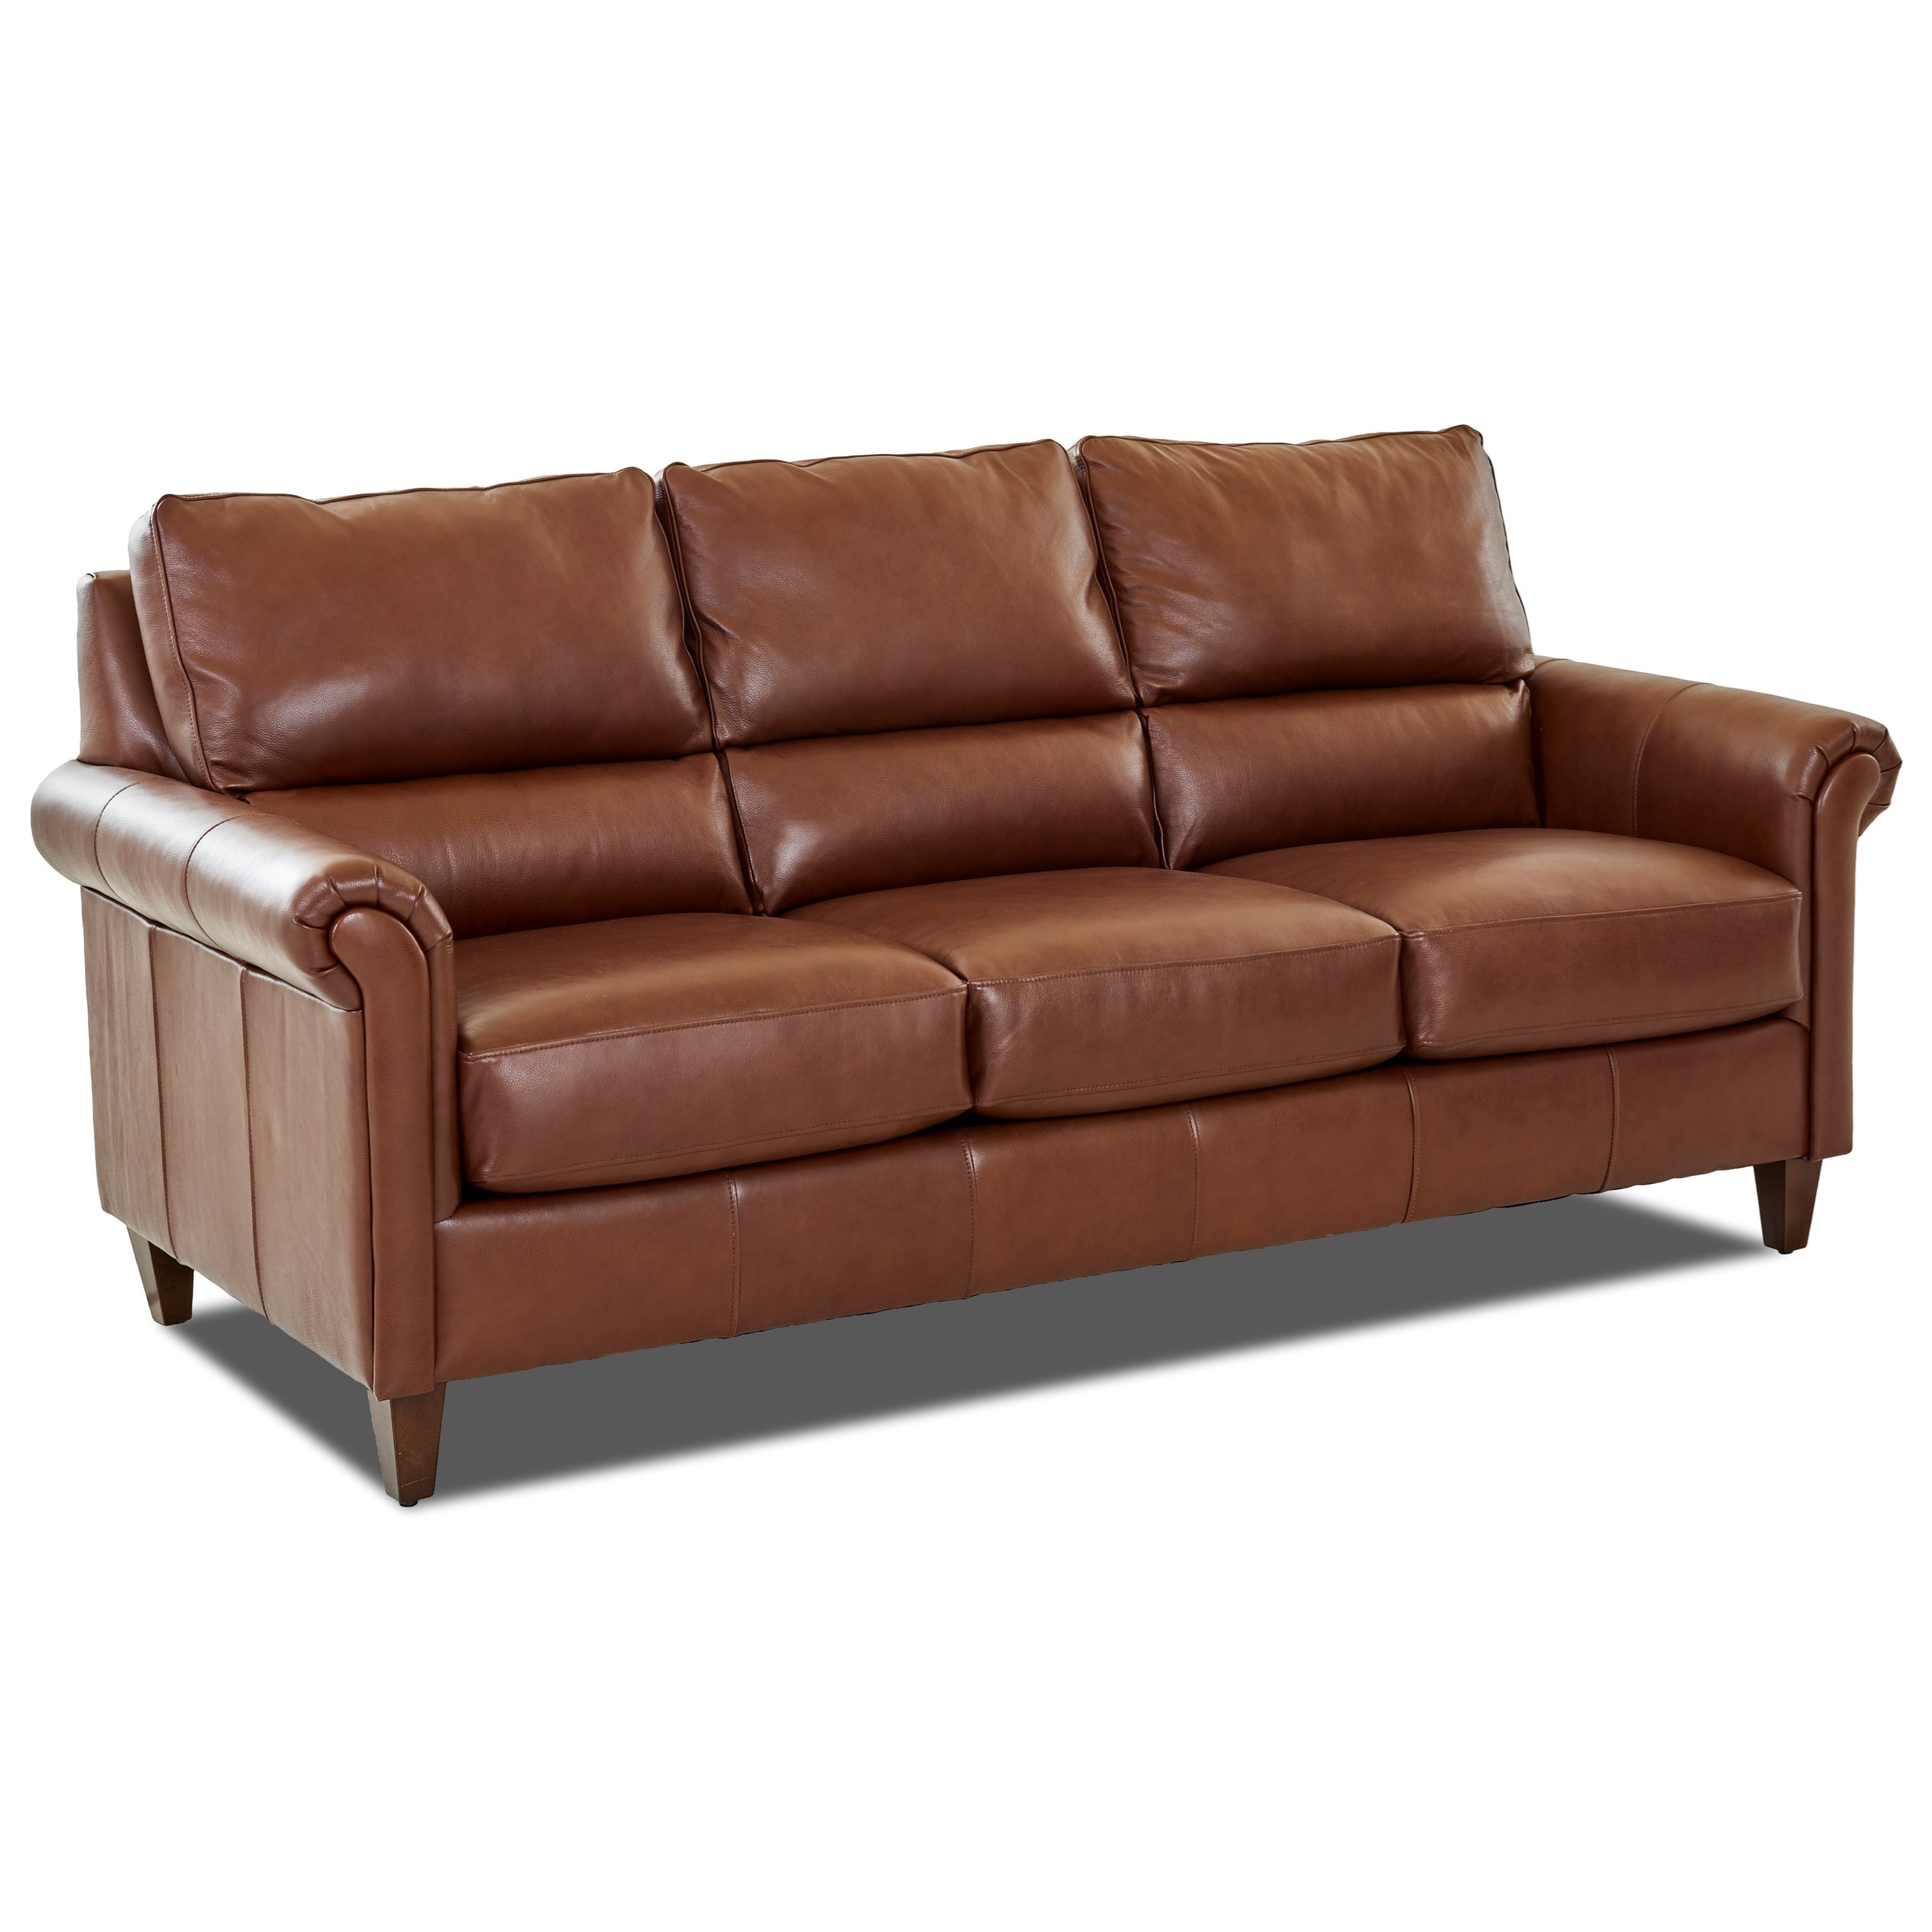 Klaussner Leather Sofa Review: Klaussner Adeline Transitional Leather Sofa With Pub Back